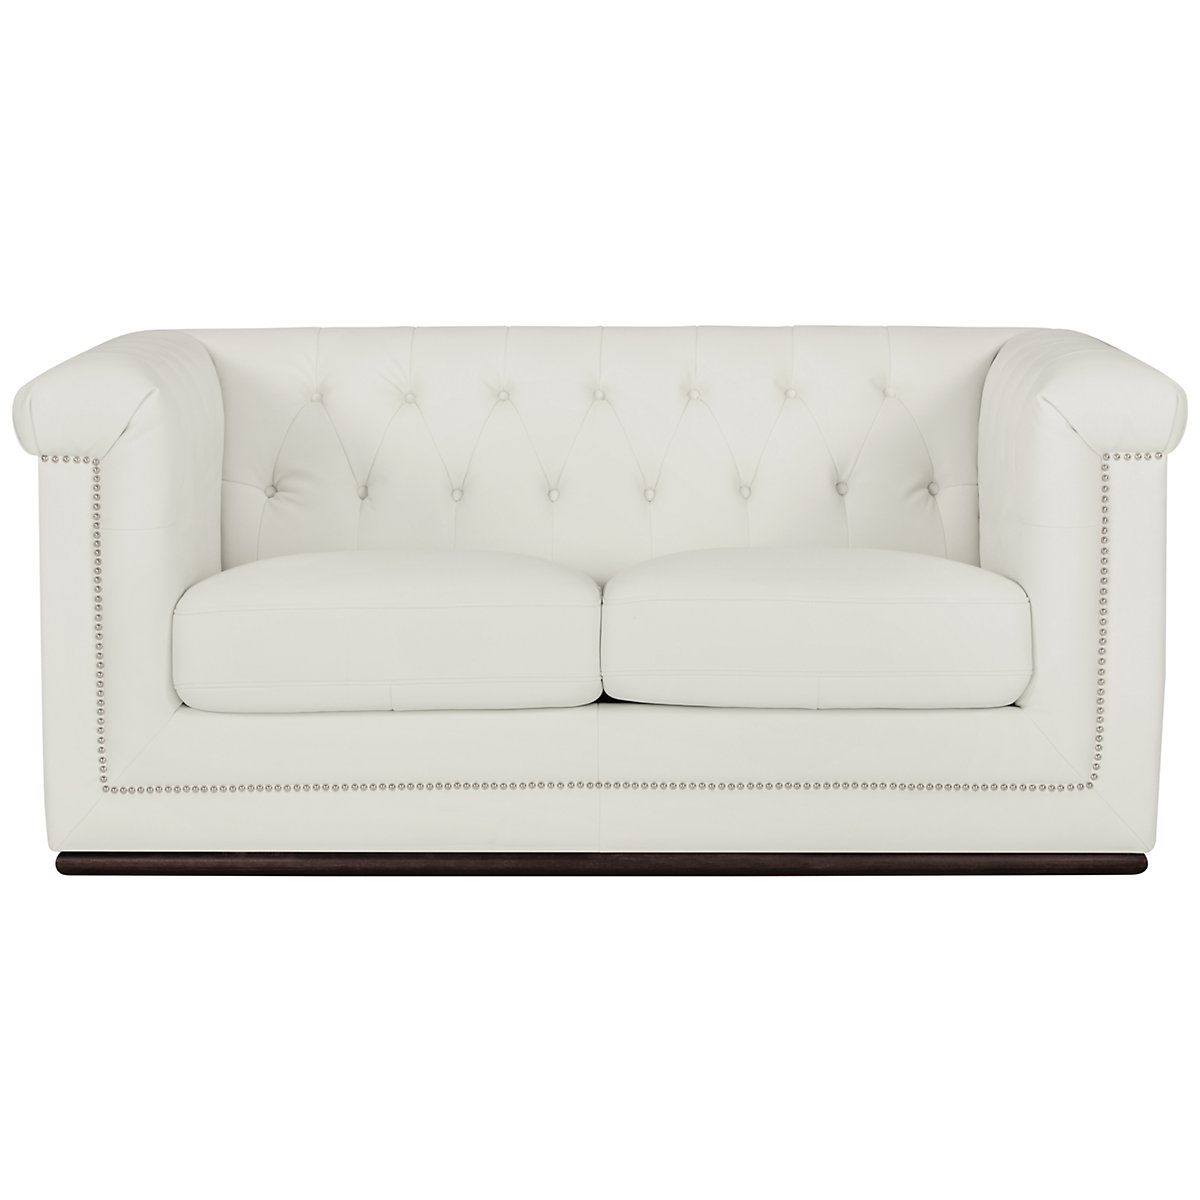 city furniture  living room furniture  loveseats - blair white microfiber loveseat